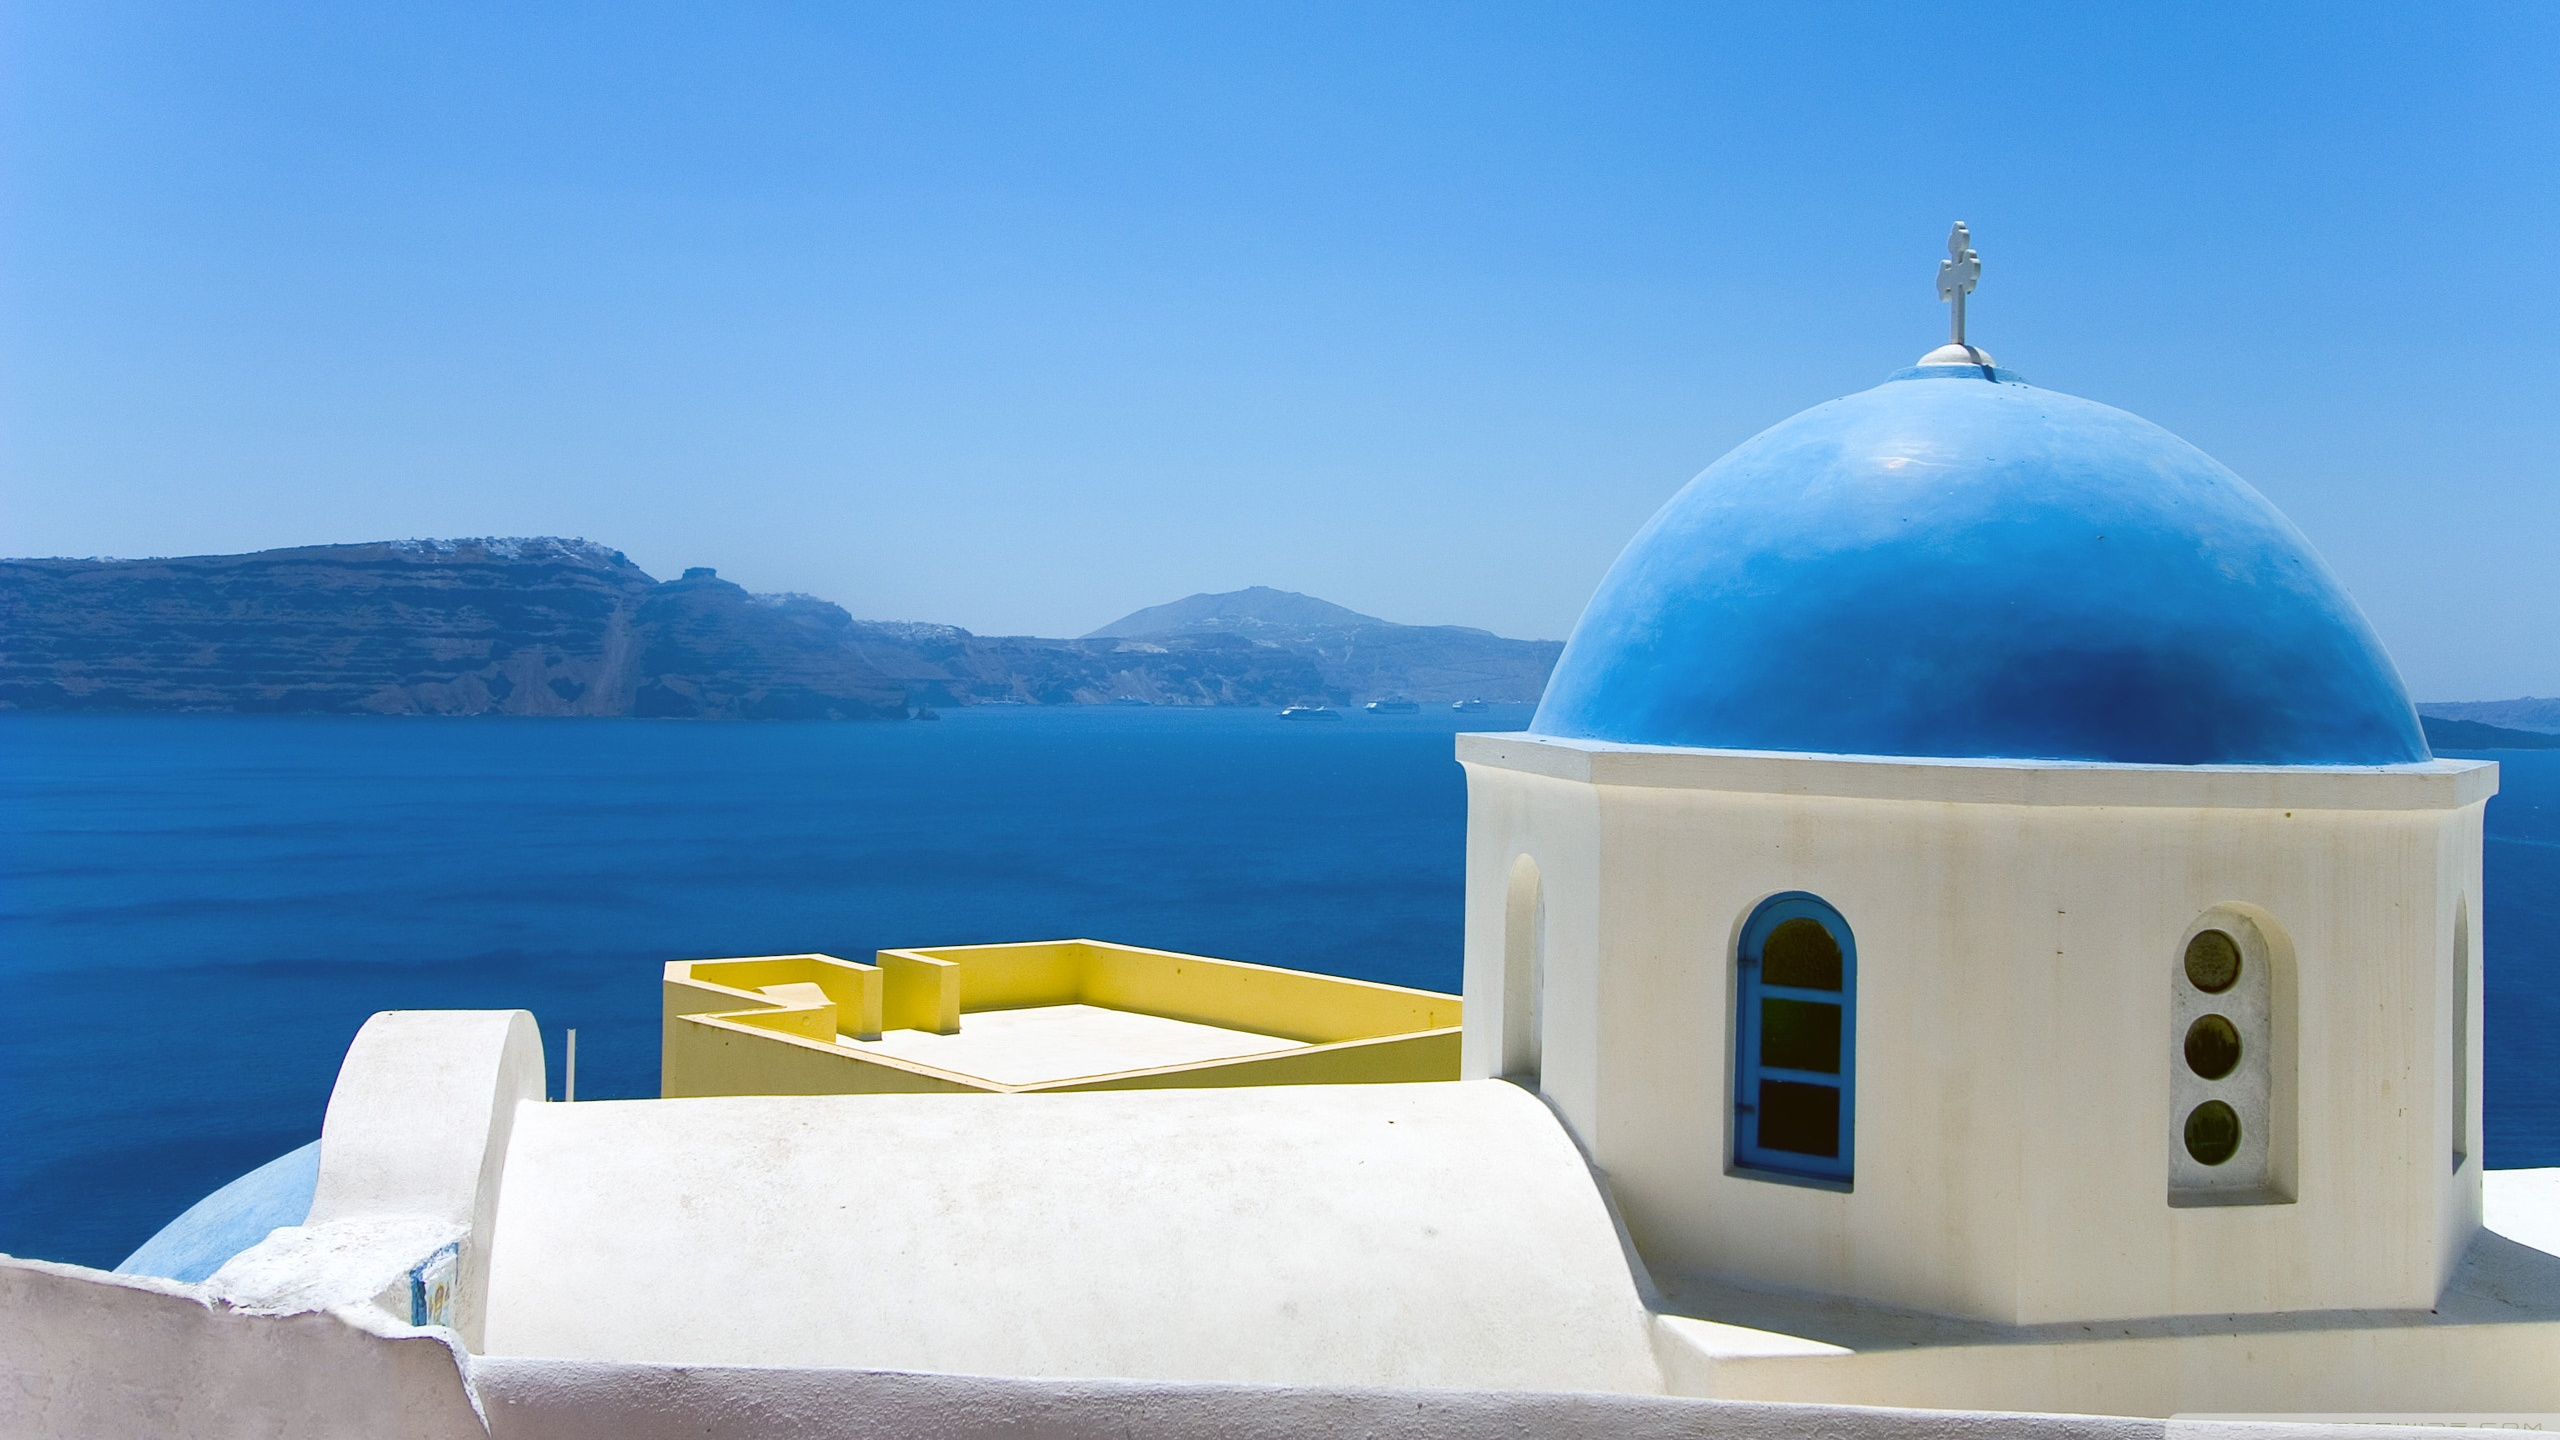 oia_greece-wallpaper-2560x1440